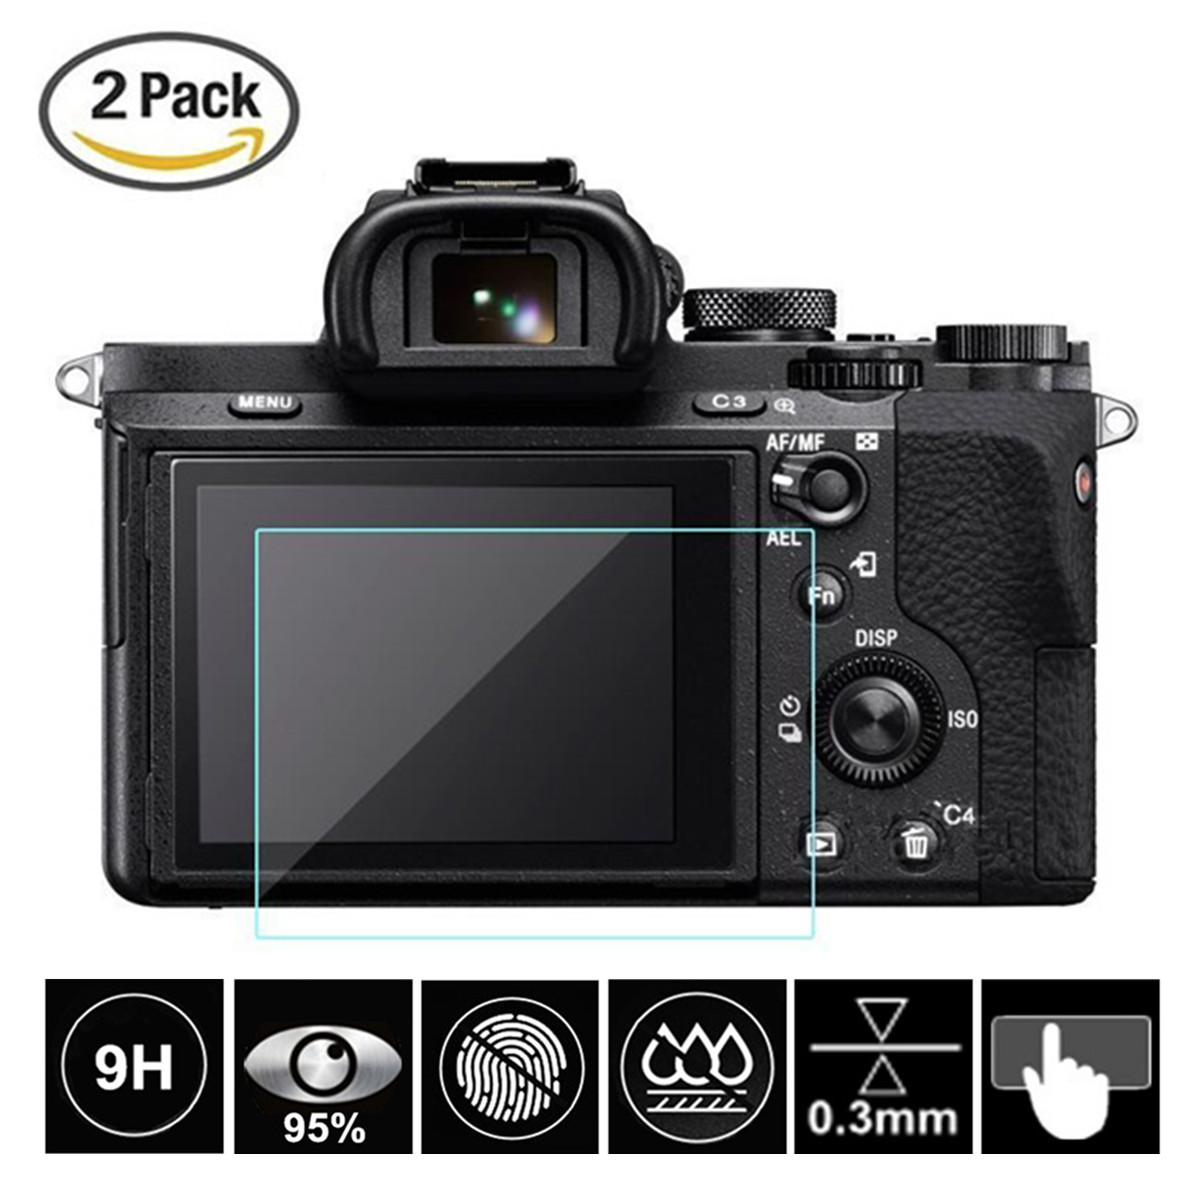 2Pcs Tempered Glass Screen Protector For Sony Alpha A6300 A6000 A5000 A99II A9 A7 II A7III A7RII A7SII RX10 RX100 II III IV V VI